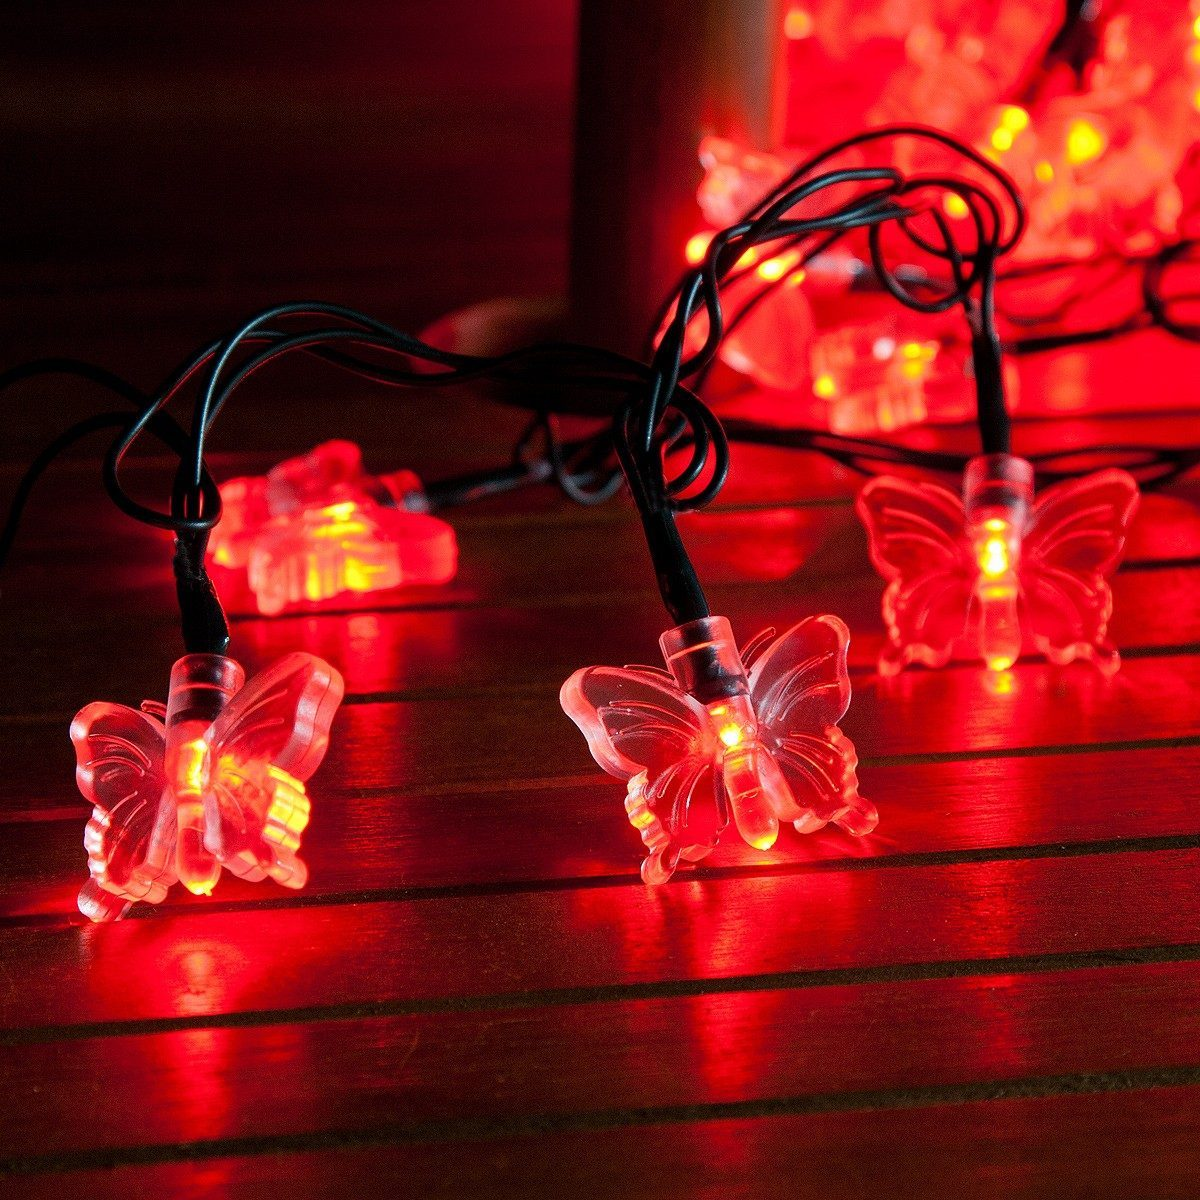 50 Red LED Butterfly Battery Operated Fairy Lights with Timer